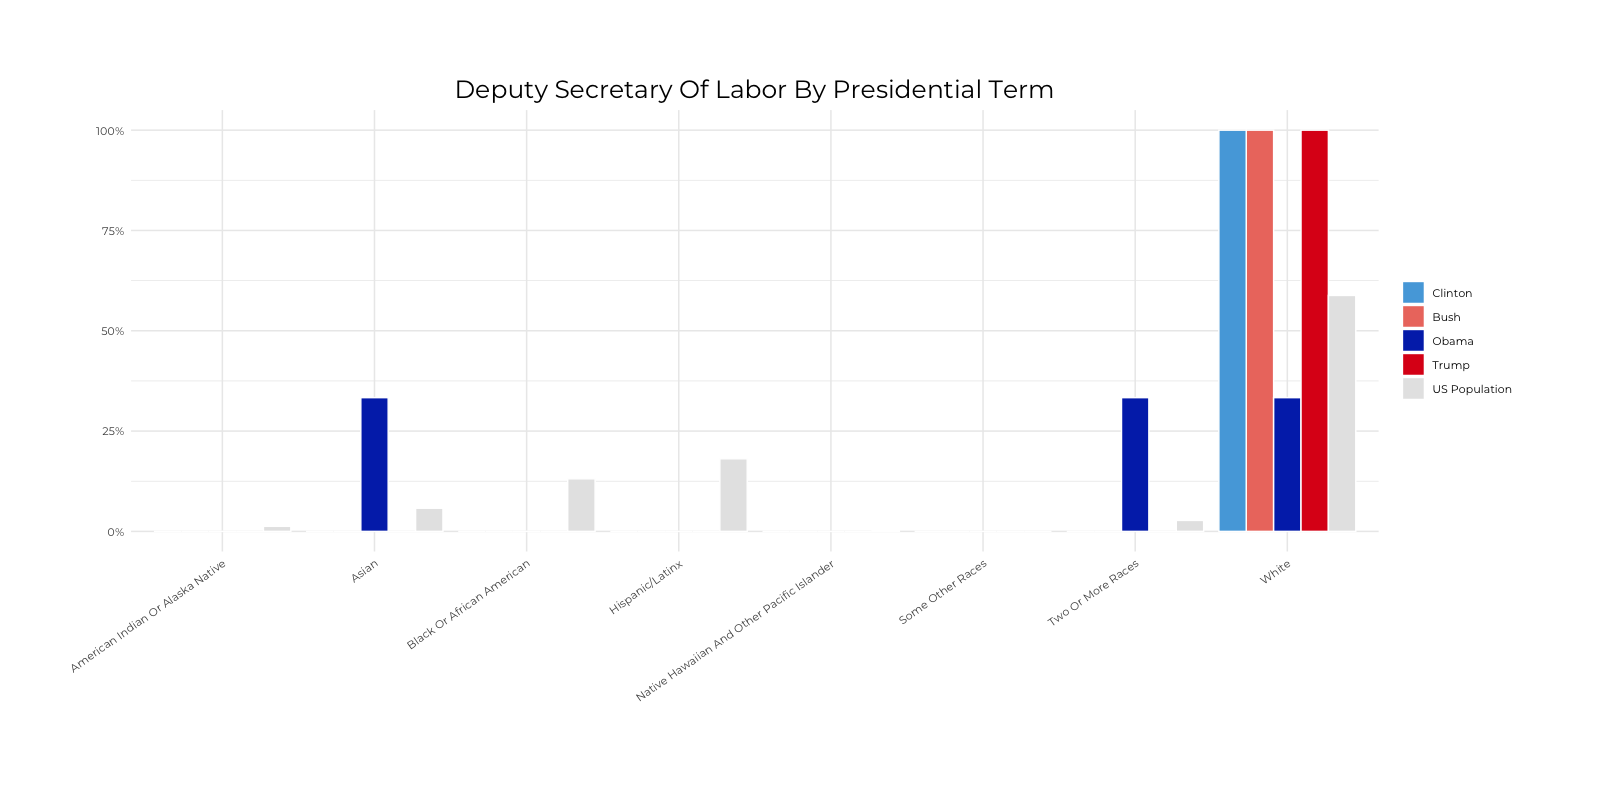 Graph about Racial Composition Comparison of Deputy Secretary of Labor by Presidential Terms. More detailed text description below.